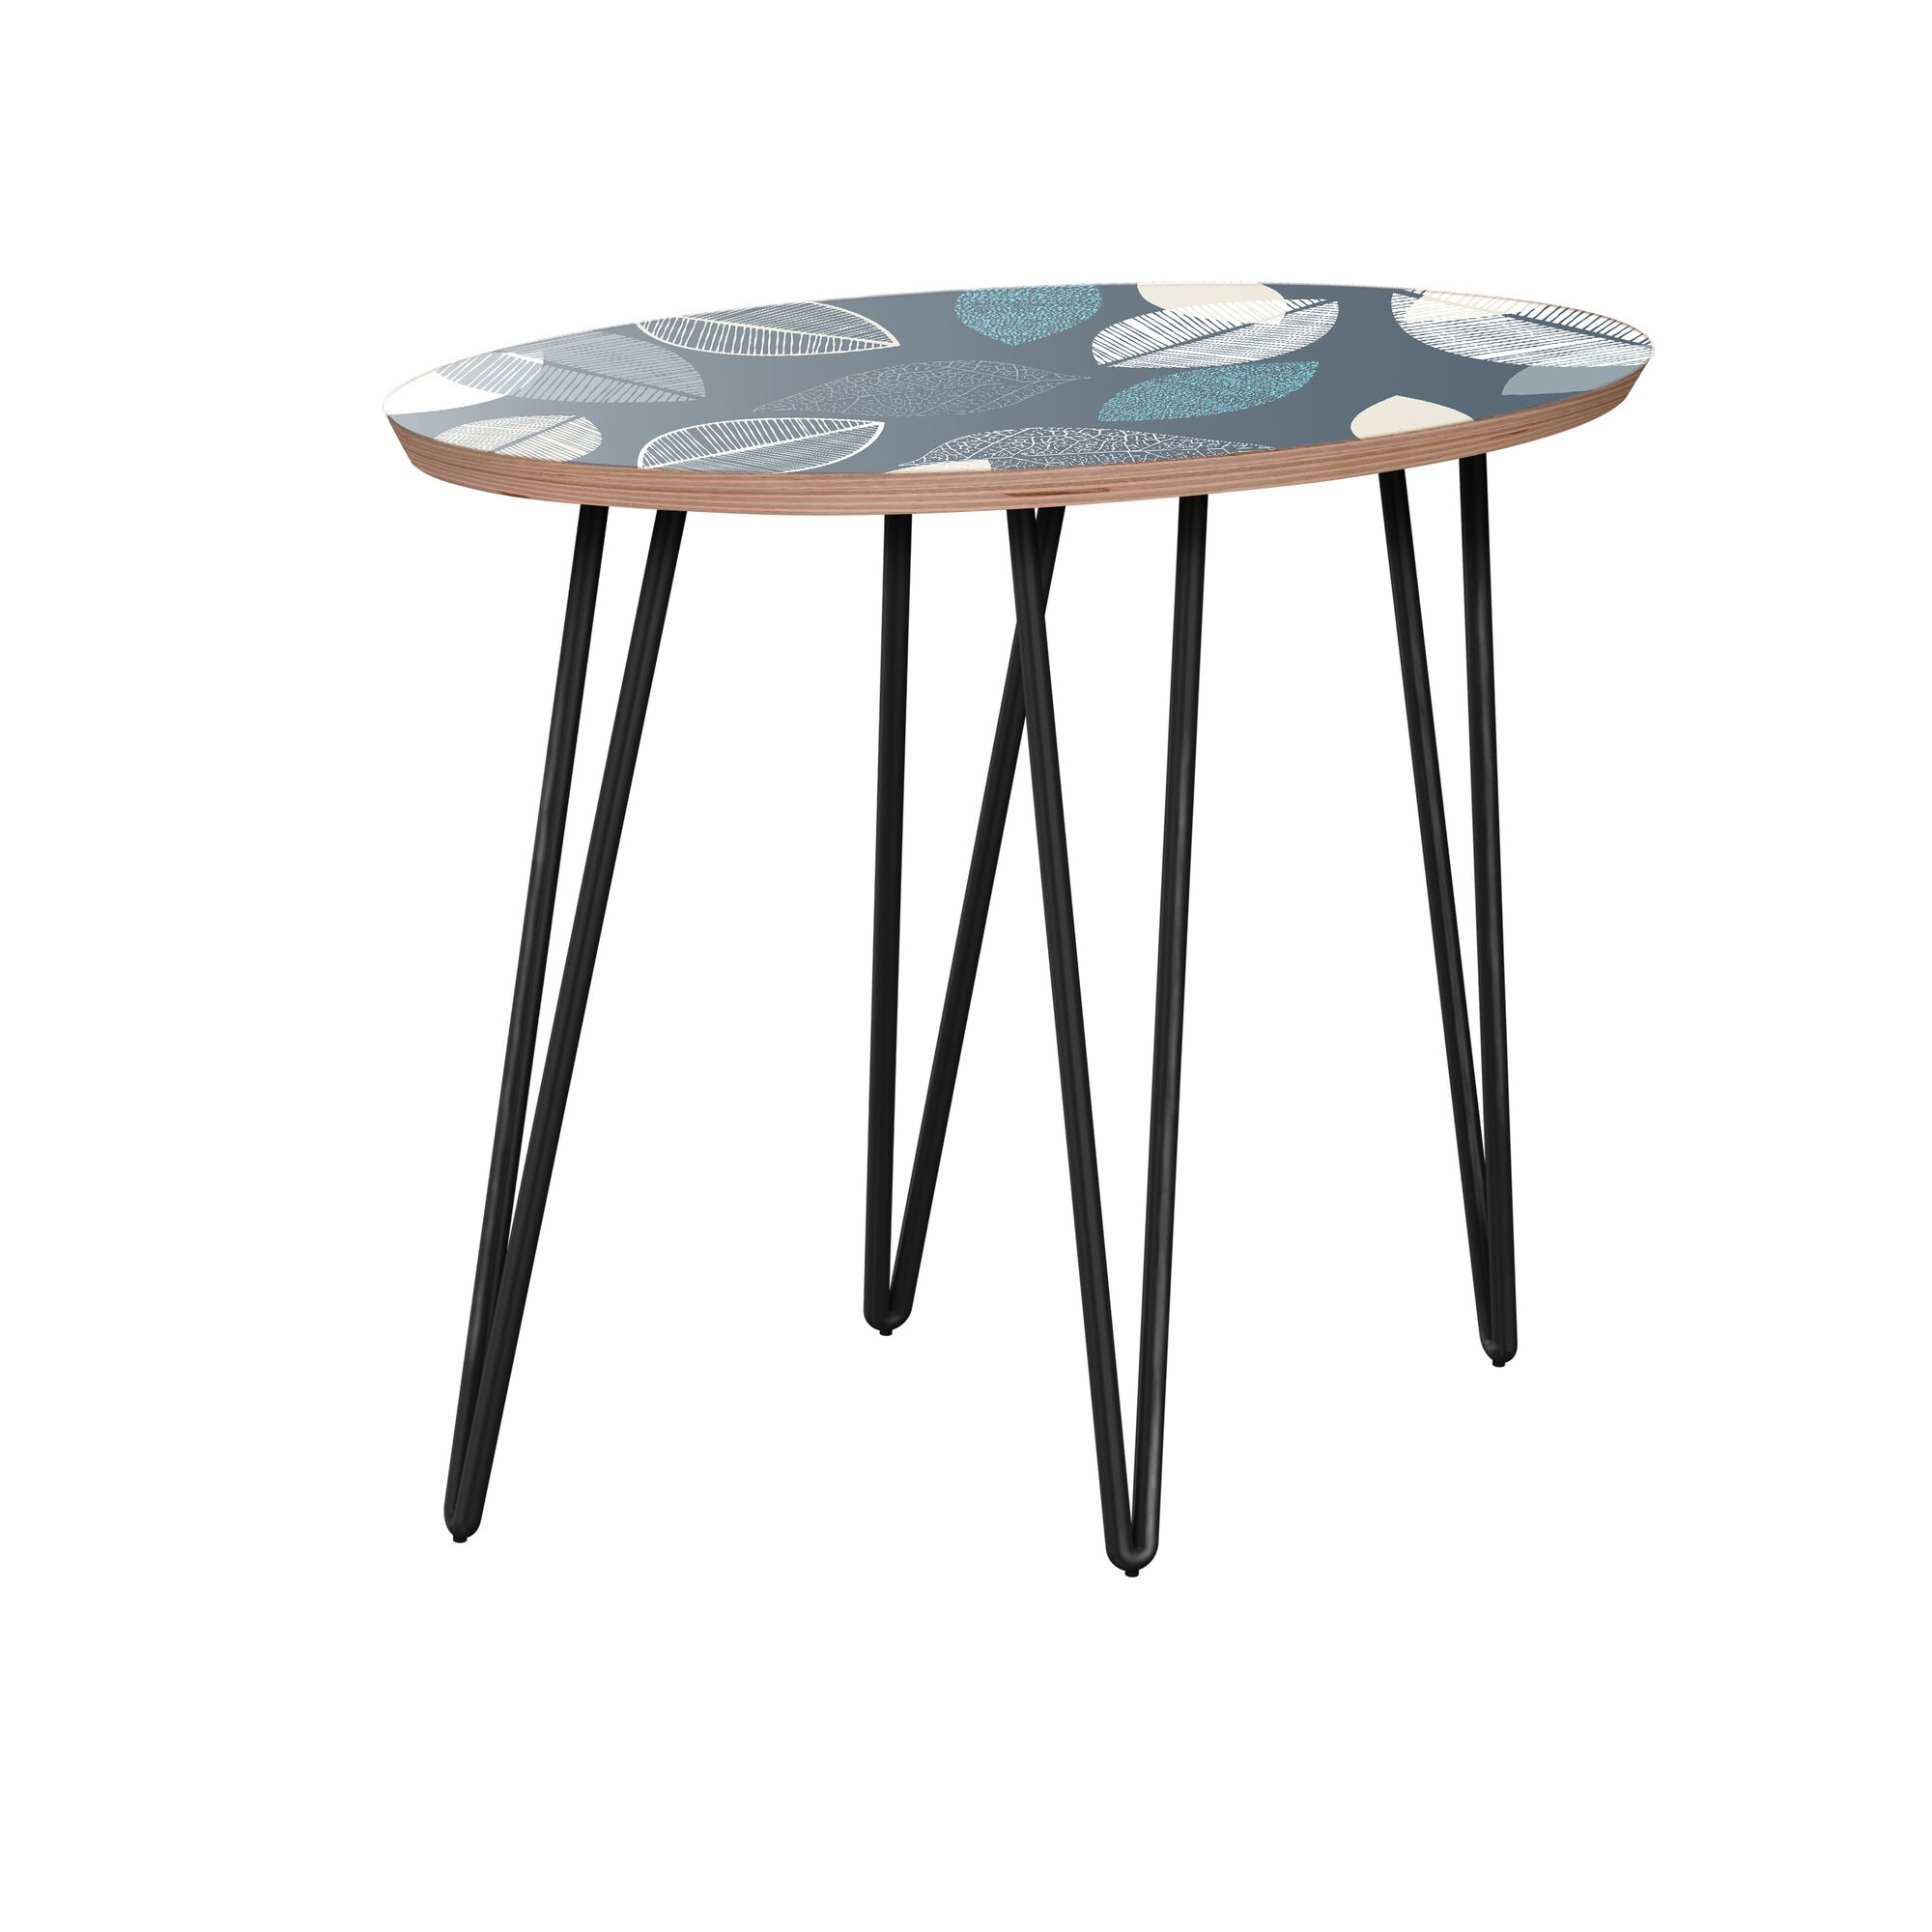 Krysten End Table Table Base Color: Black, Table Top Boarder Color: Walnut, Table Top Color: Blue